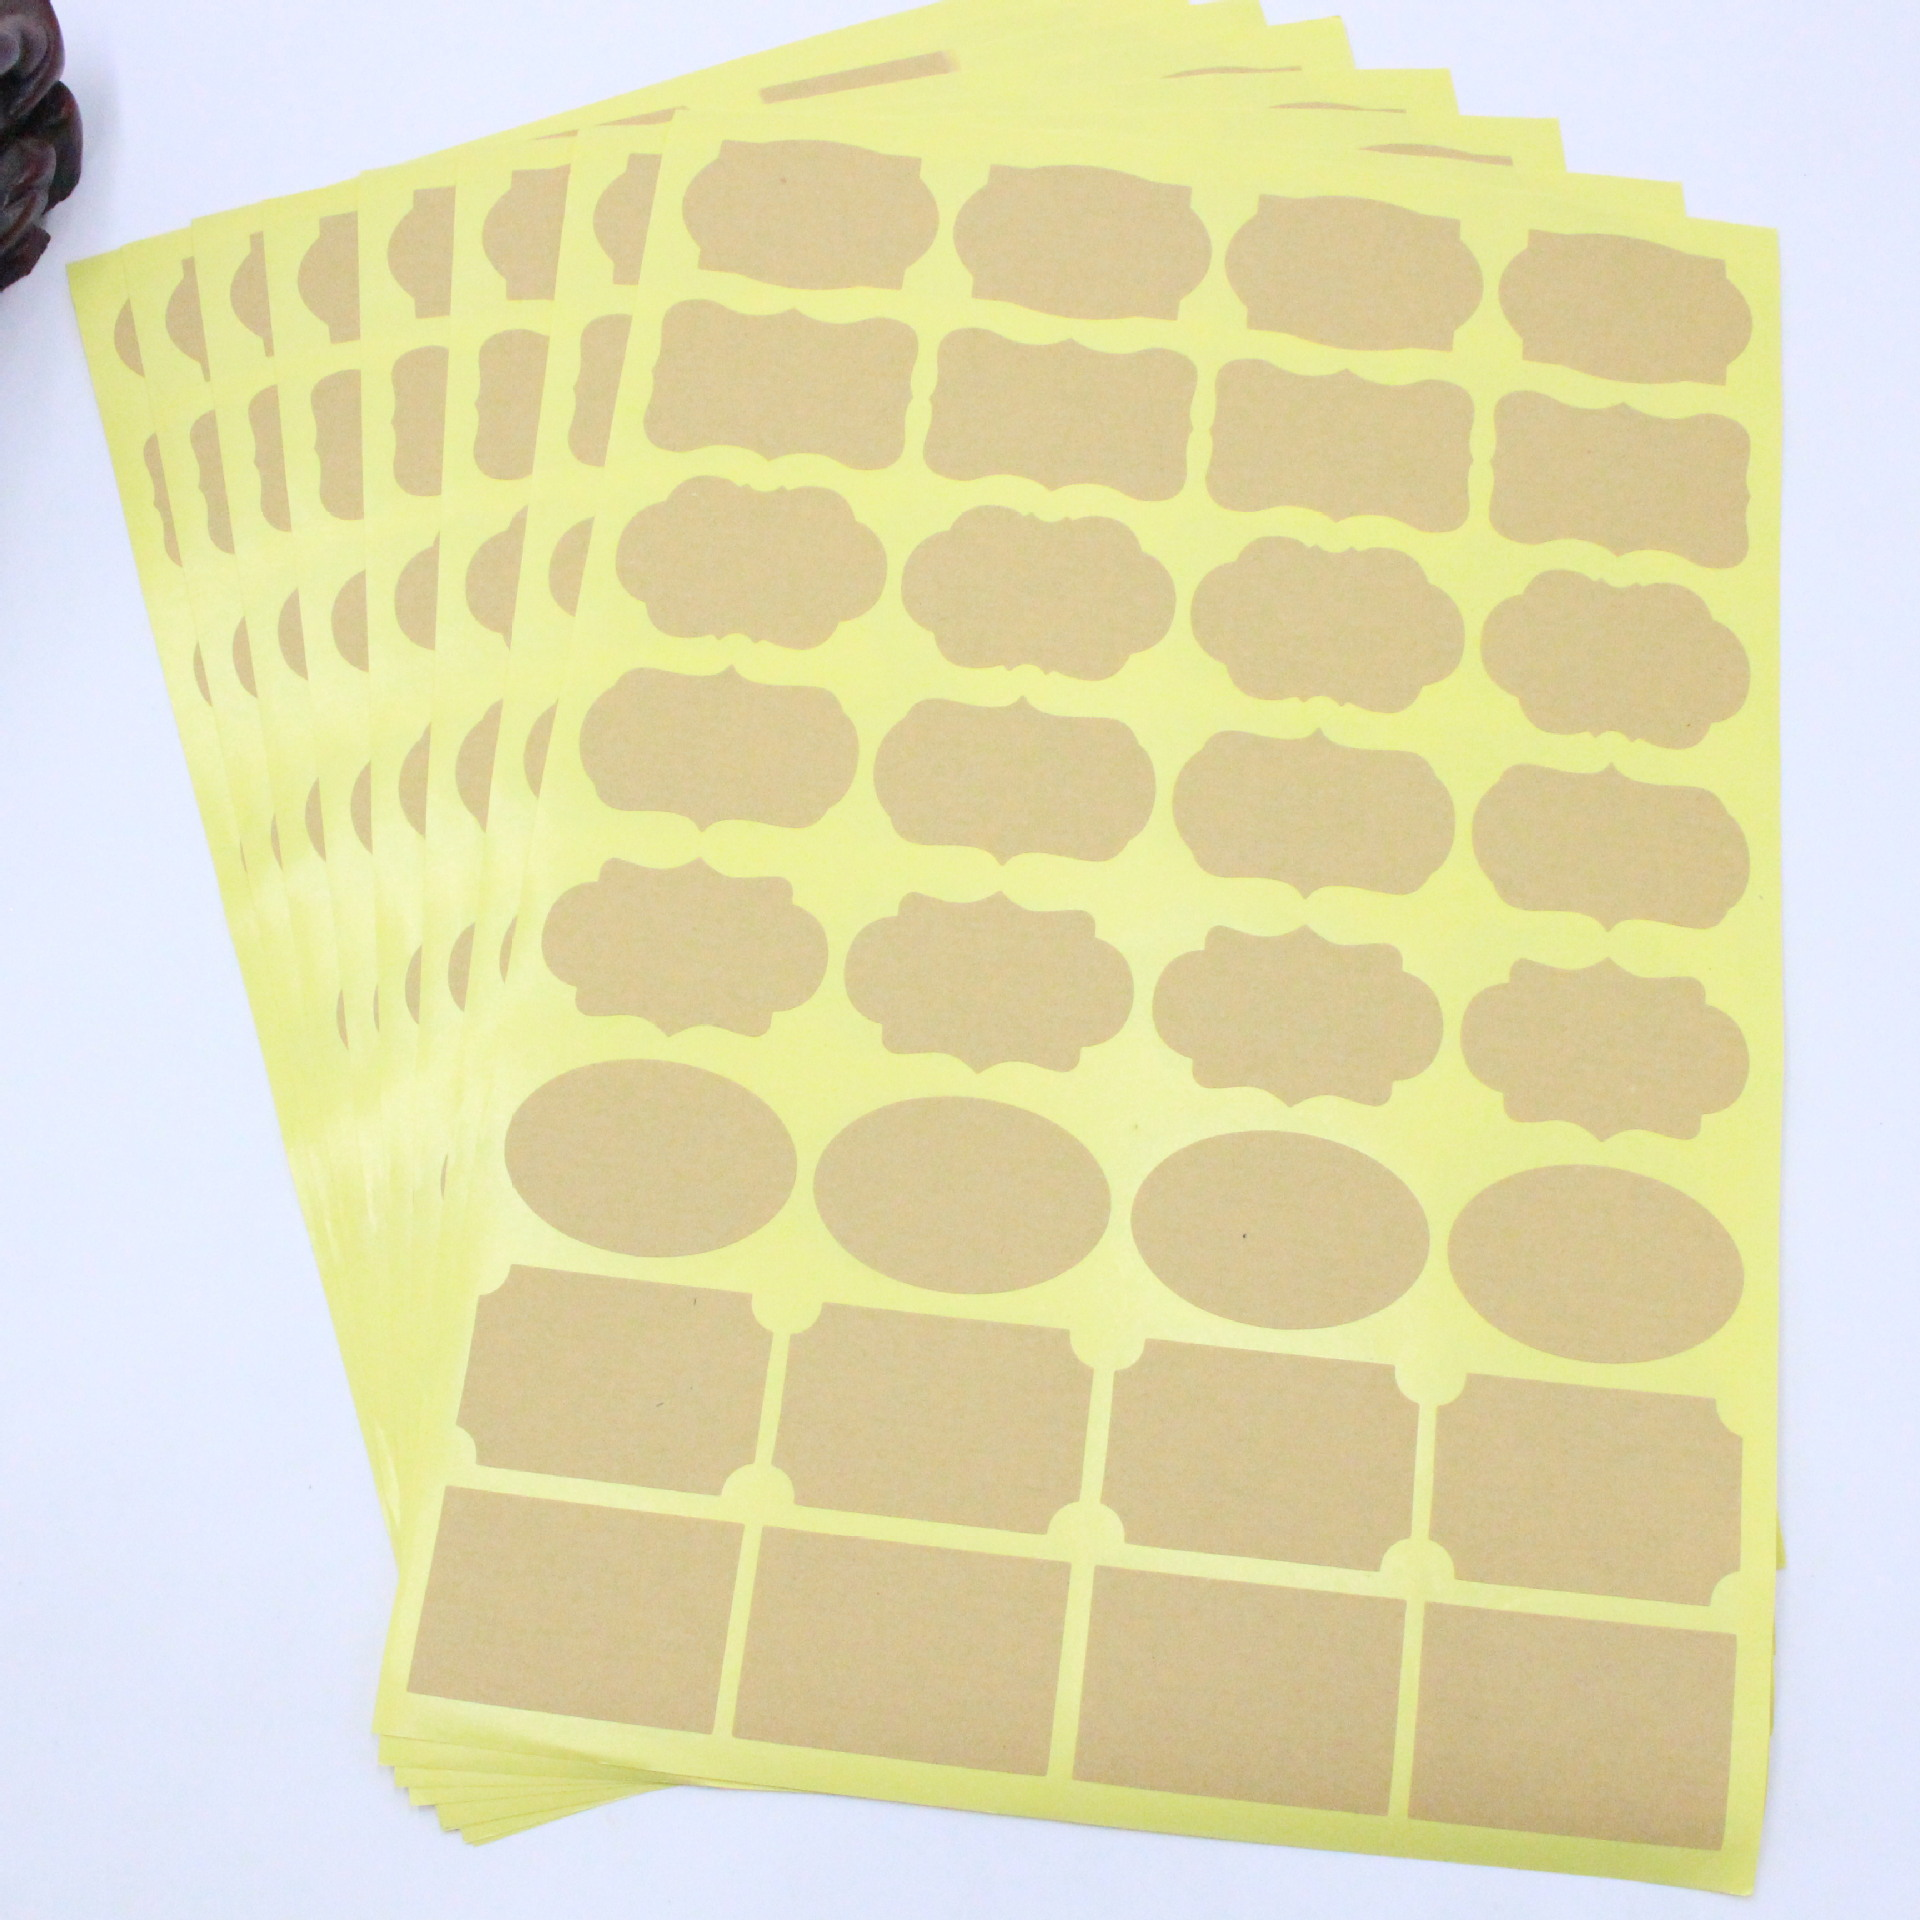 96 Pcs/lot Handmade Sticker Vintage Blank Kraft Label Sticker DIY Hand Made For Gift Cake Baking Sealing Sticker